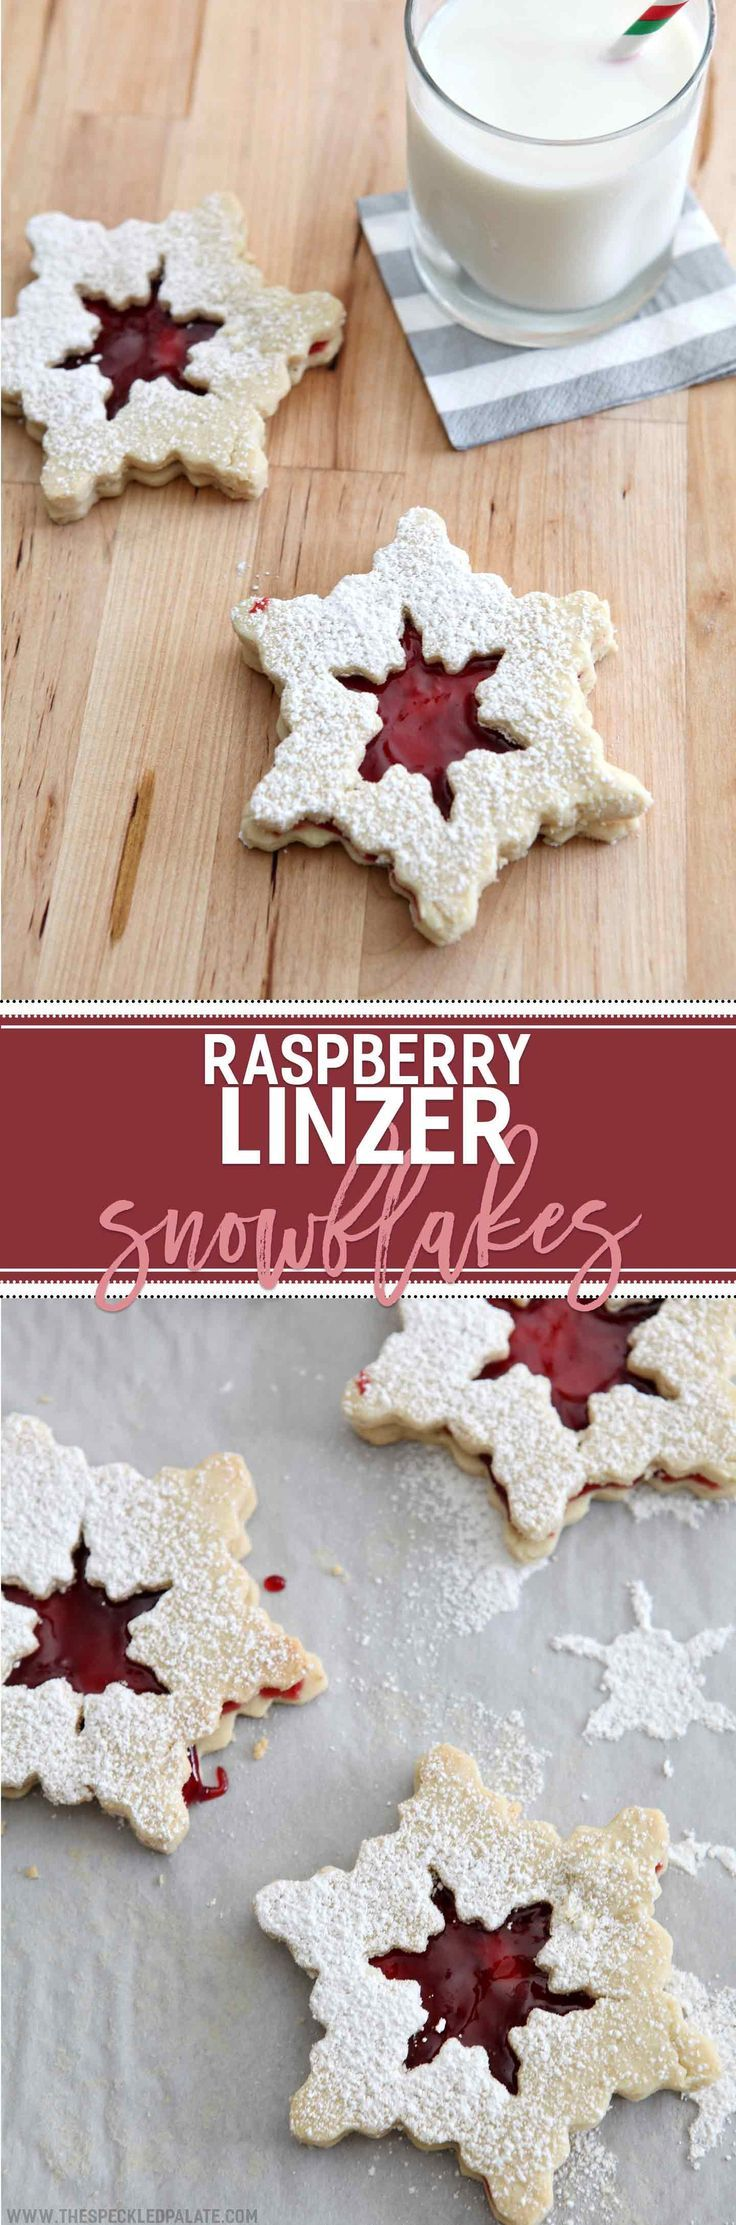 Linzer Cookie Recipe | Raspberry Linzer | Snowflake Cookie | Christmas Cookie | Delicate Cookie | Shortbread Cookie | Filled Cookie | Christmas Baking | Holiday Baking | Winter Cookie | Holiday Cookie | Favorite Cookies